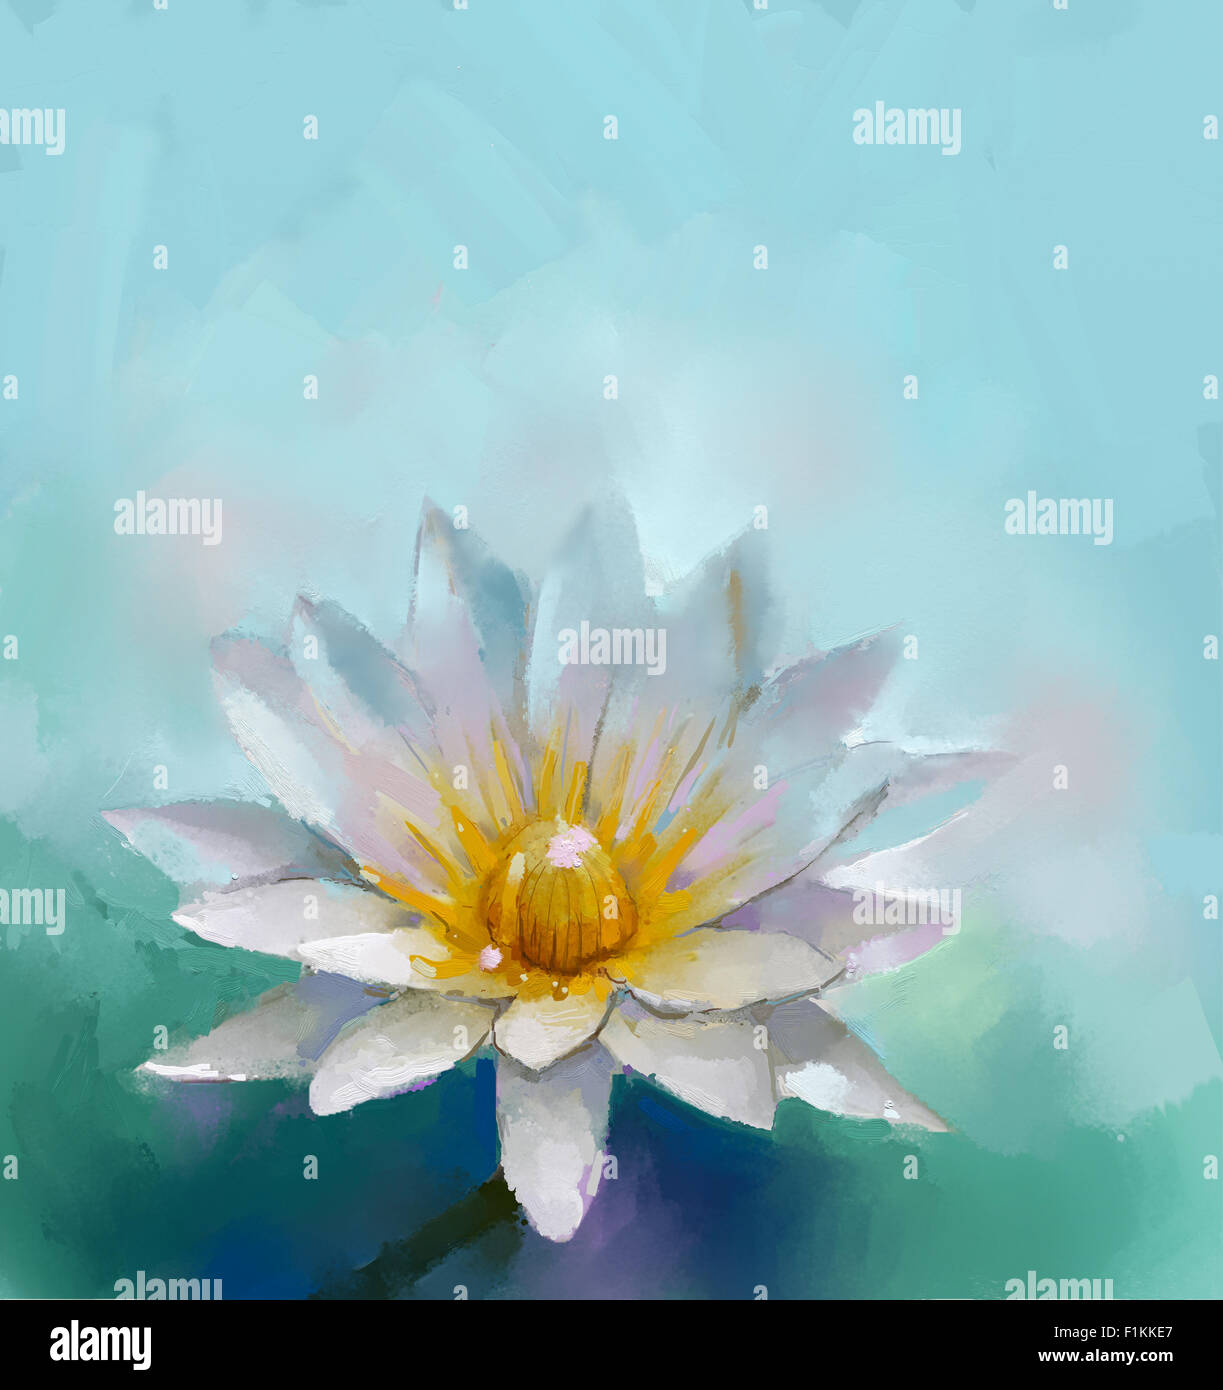 Oil painting lotus flower with blue color space background stock oil painting lotus flower with blue color space background izmirmasajfo